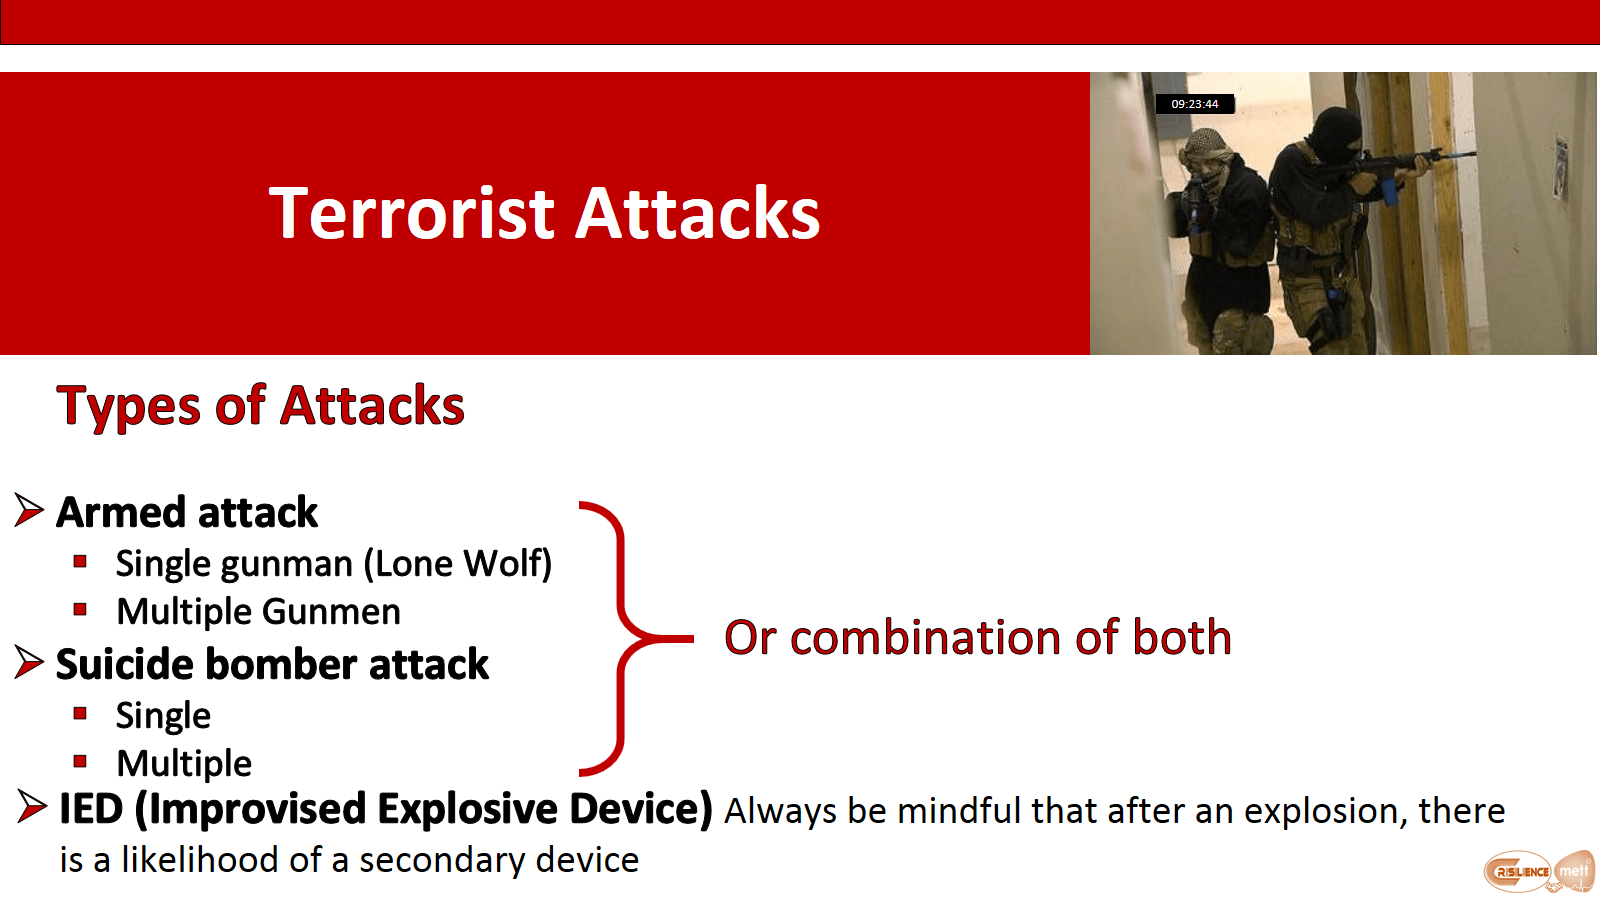 Types of terrorist attacks, what are they?